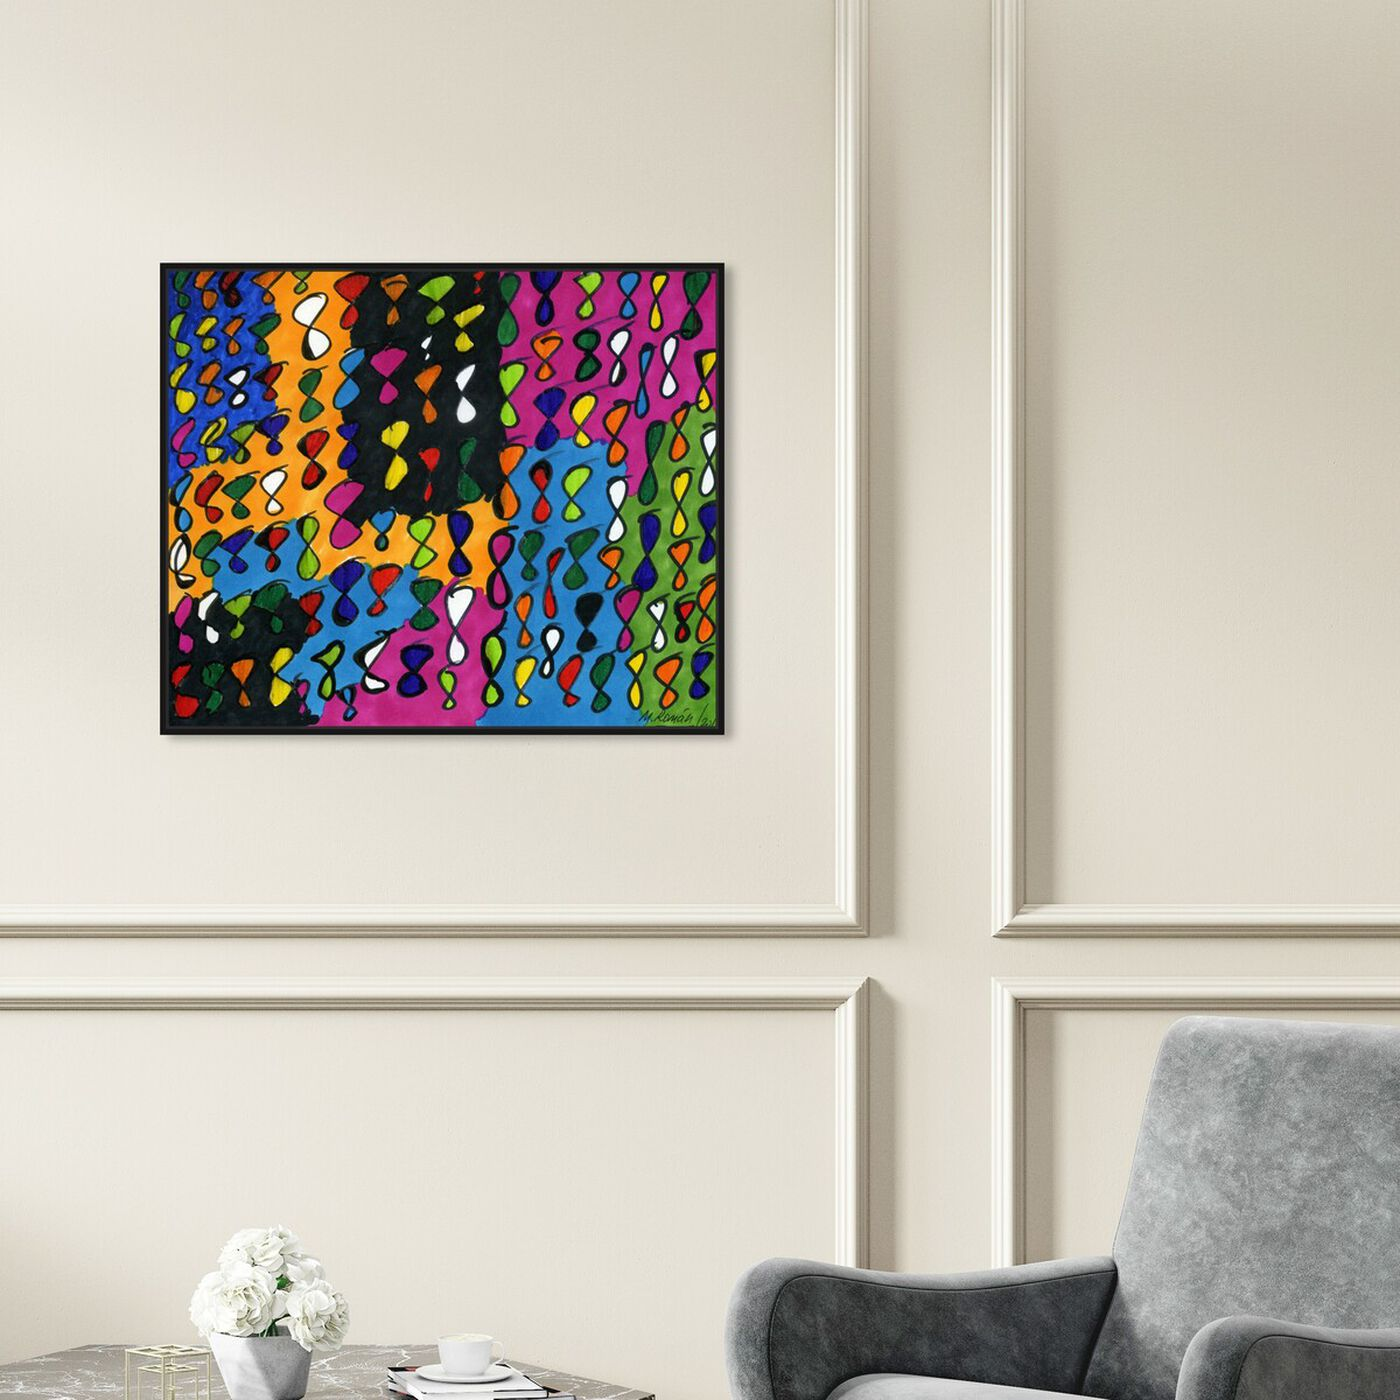 Hanging view of Infinite featuring abstract and shapes art.